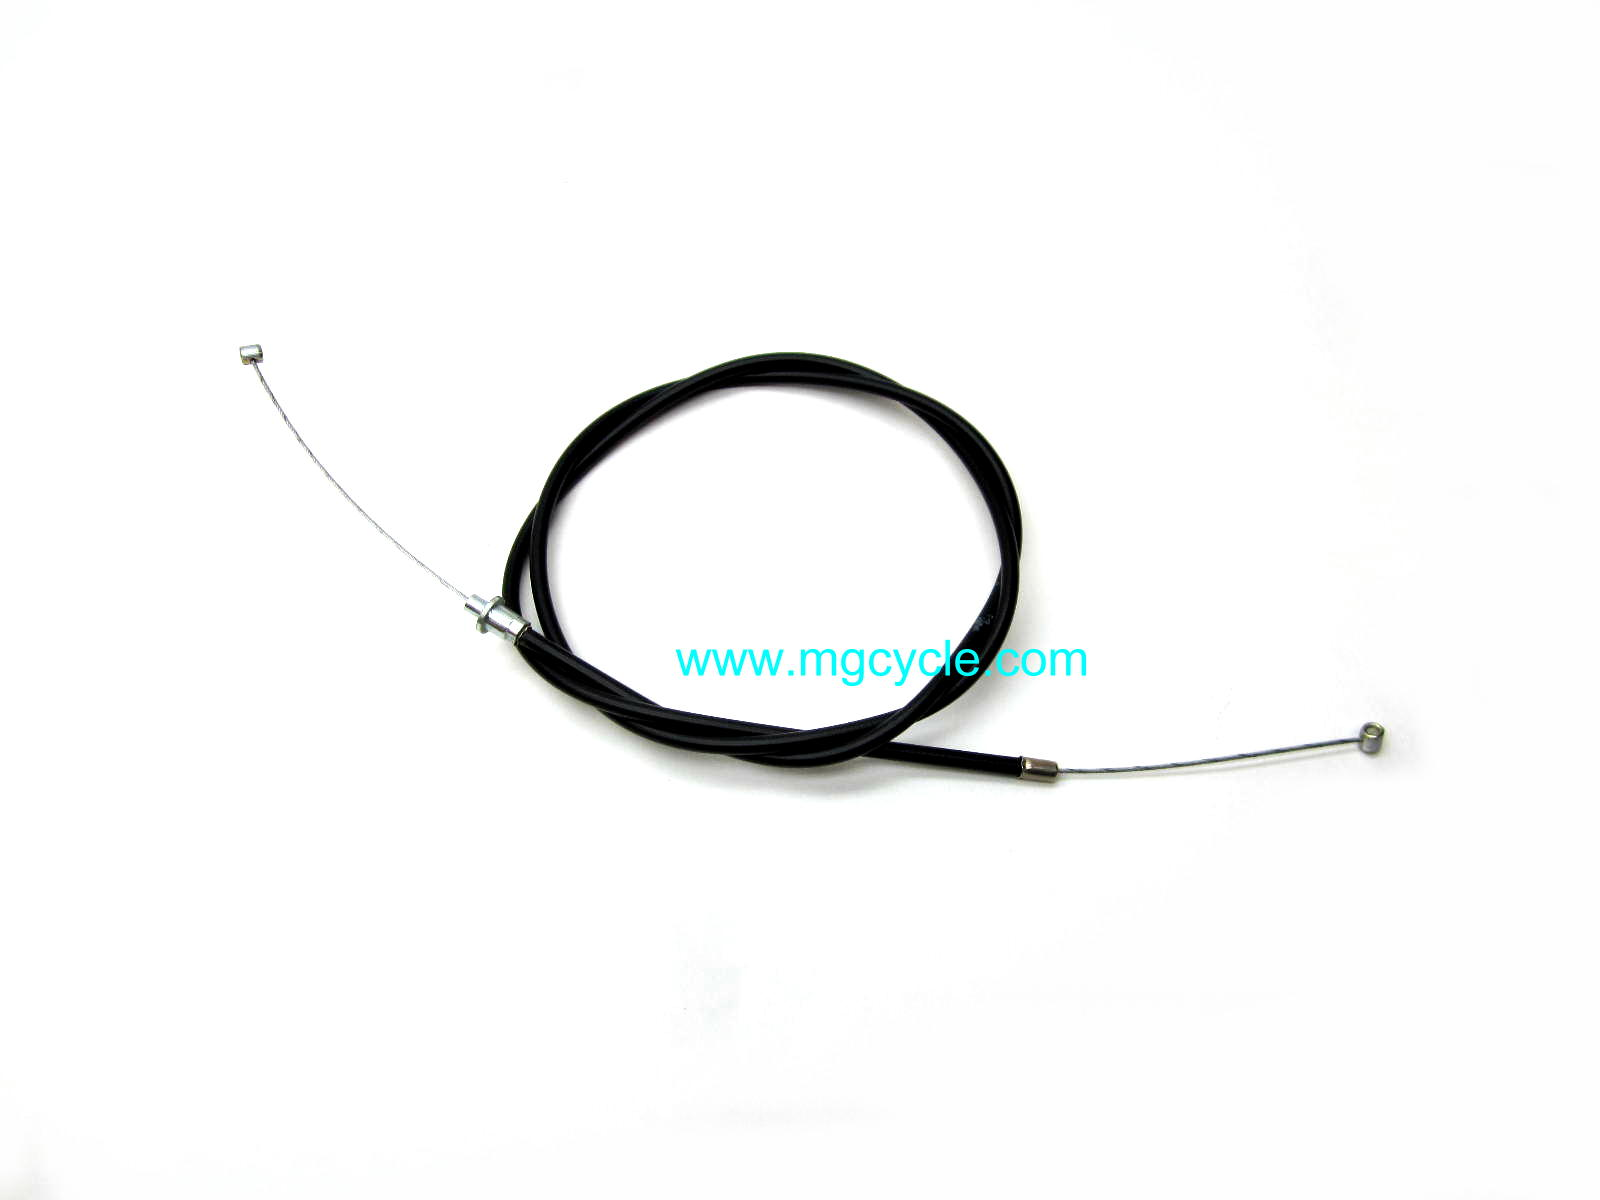 Throttle cable V10 Centauro GU02117500